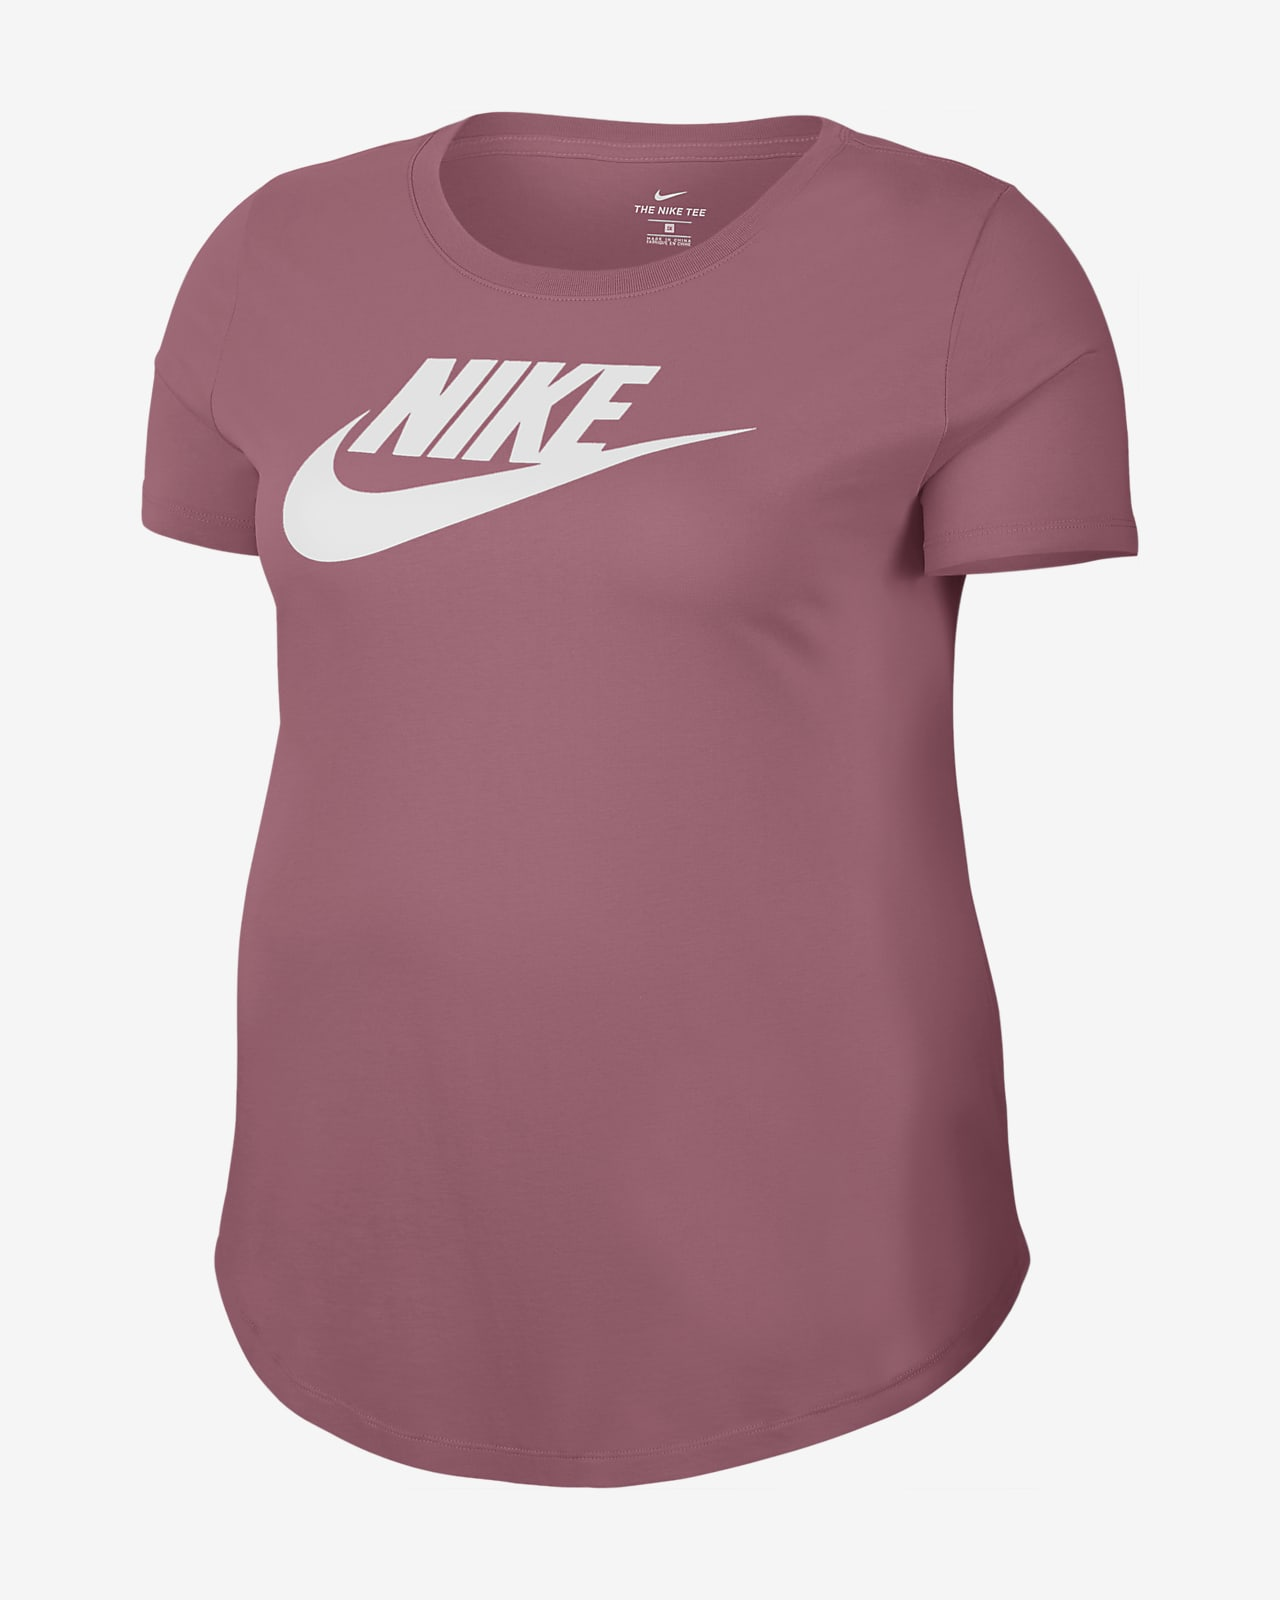 Tee shirt Nike Sportswear Essential pour Femme (grande taille)